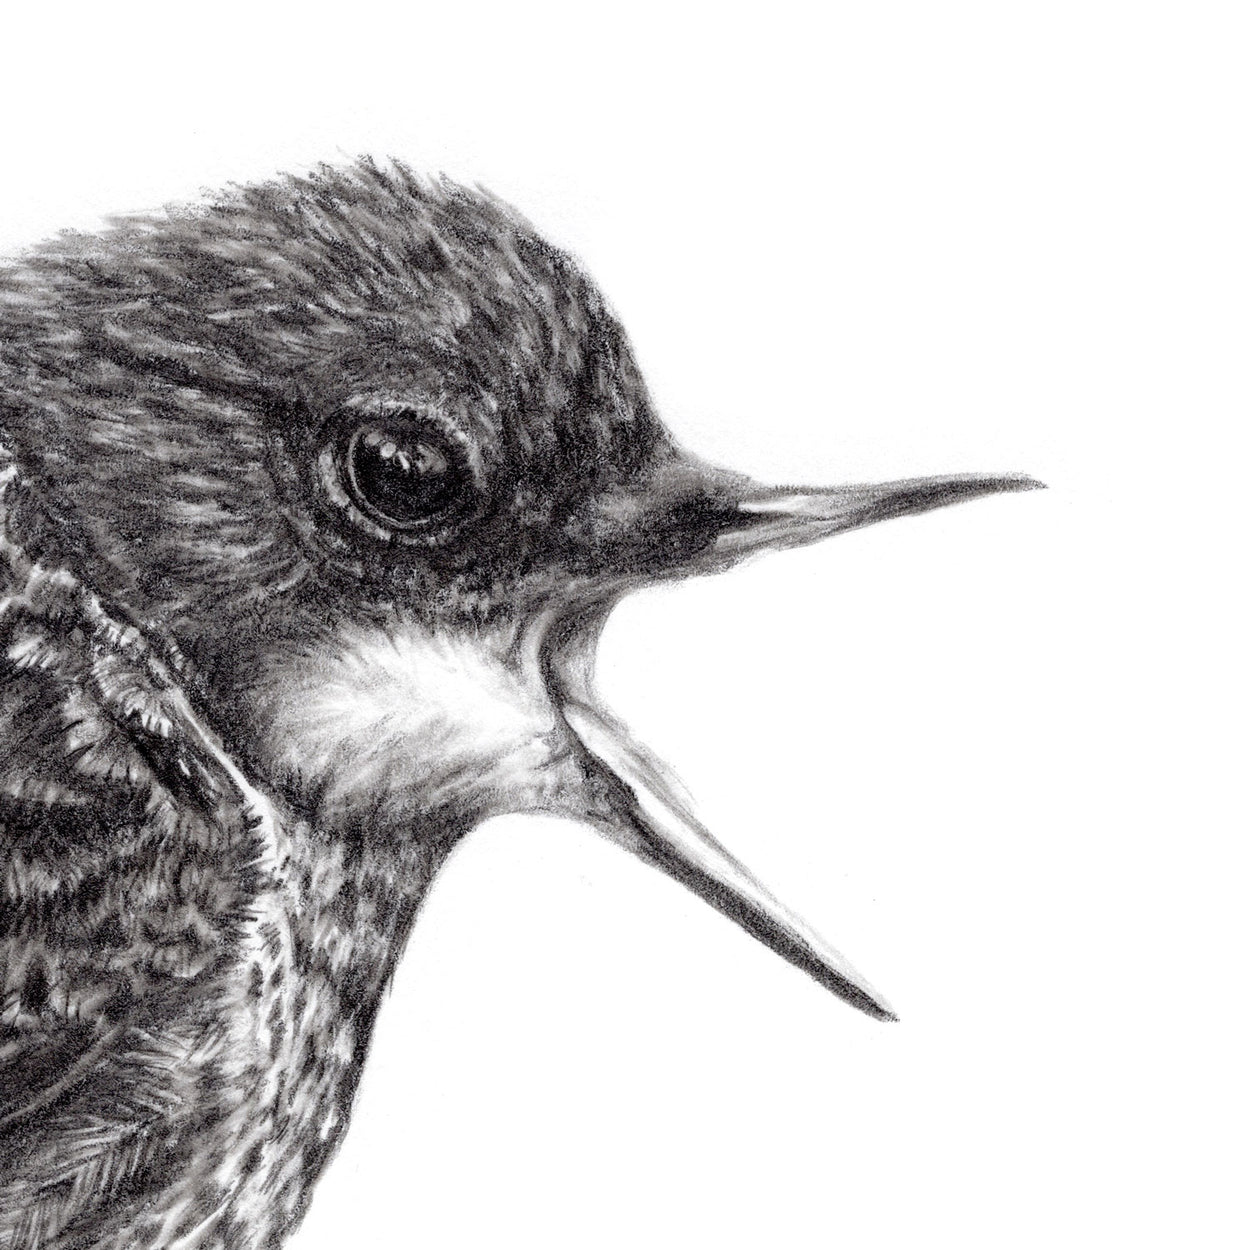 Dipper Bird Drawing Close-up - The Thriving Wild